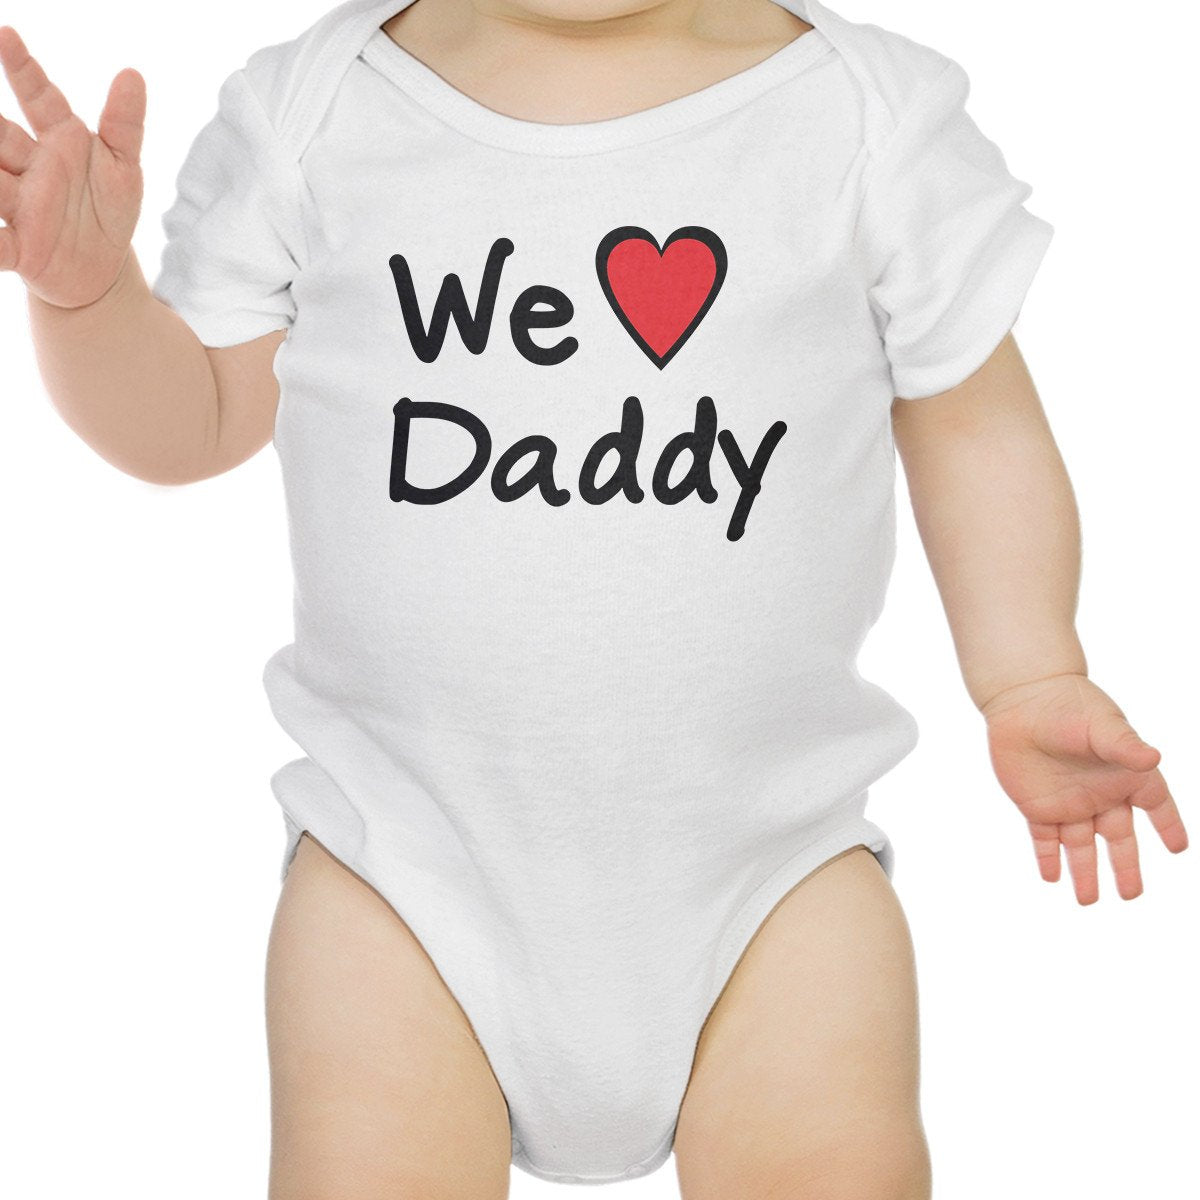 We Love Dad White Cute Baby Onesie Cotton Fathers - Zip & Mos